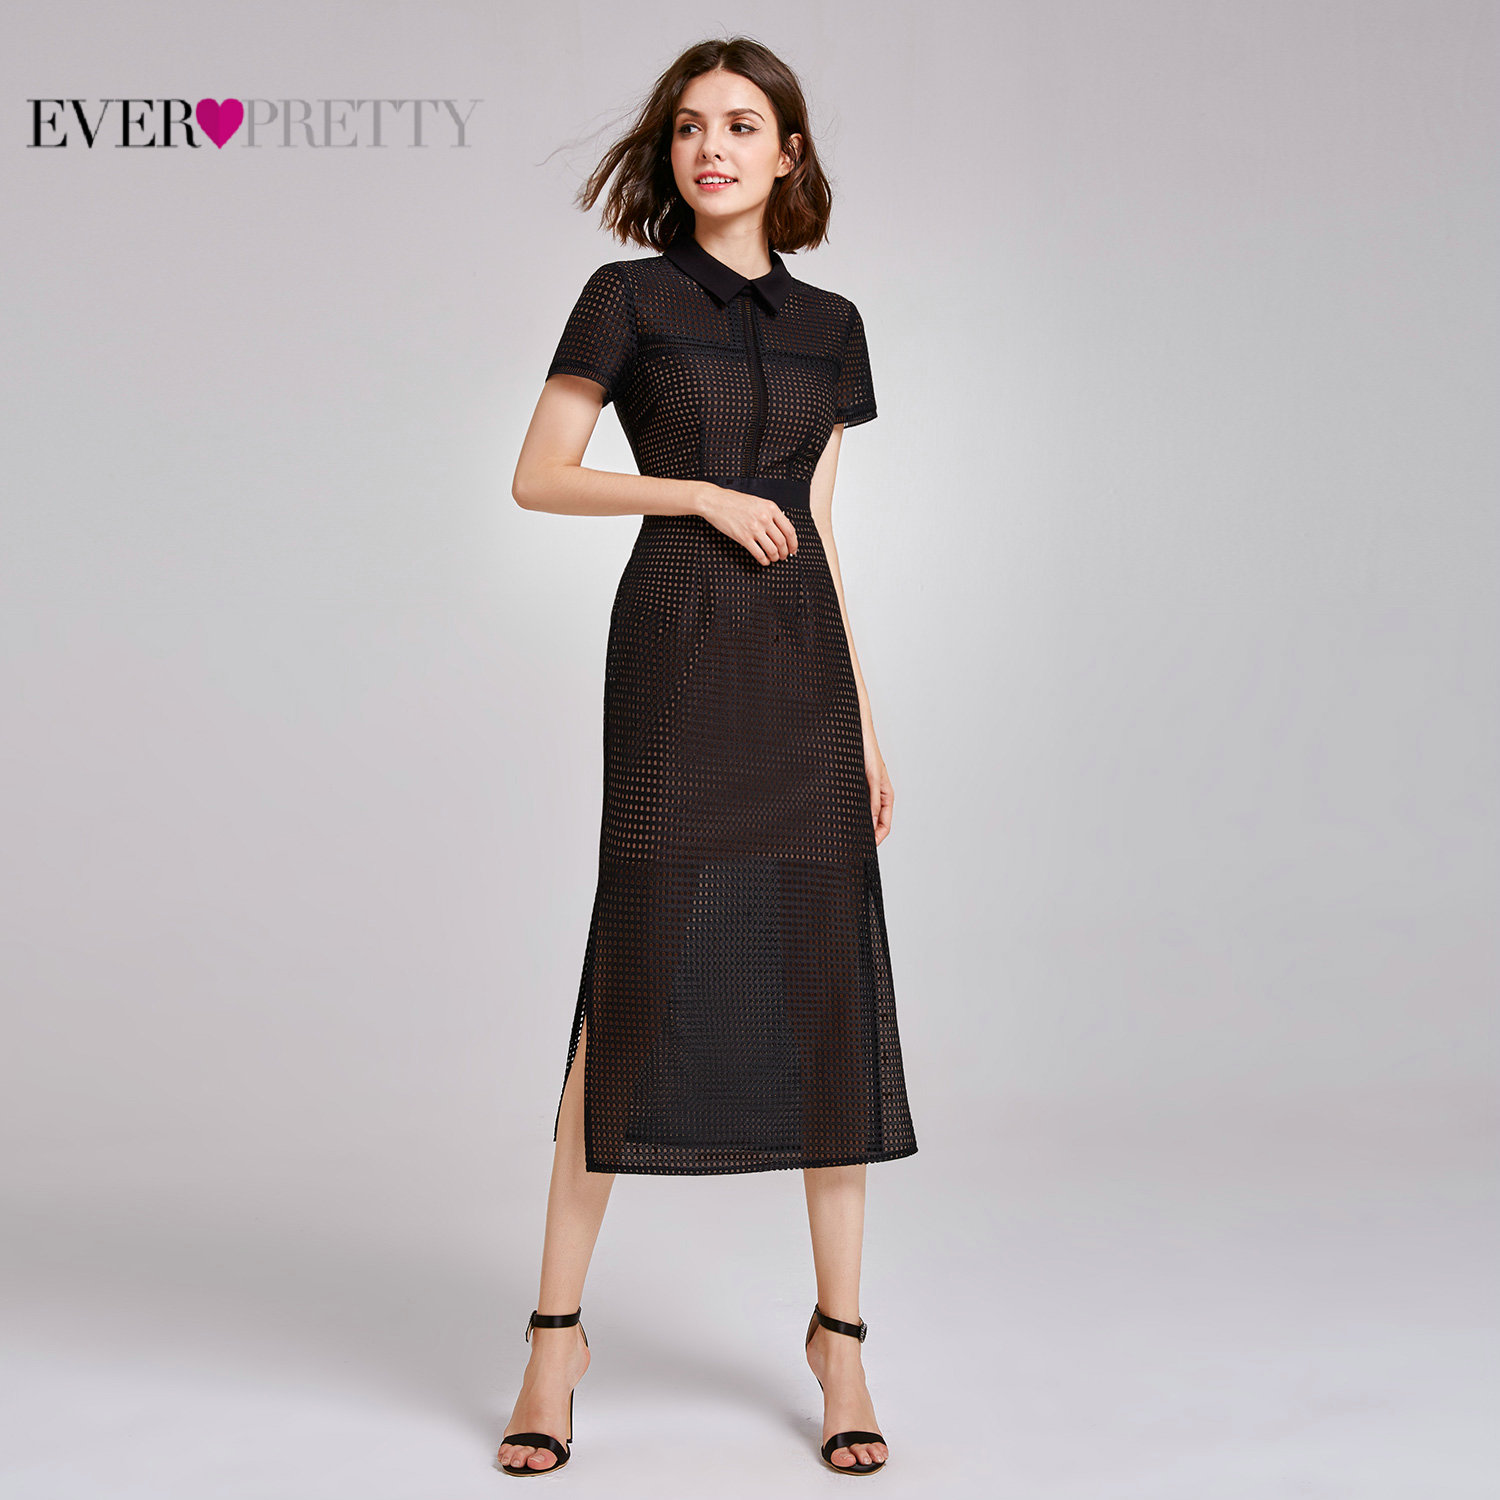 Lace Cocktail Dresses Ever Pretty AS07169 Short Sleeve Straight Sexy Causal Office Dress 2019 Tea Length Evening Gowns-in Cocktail Dresses from Weddings & Events